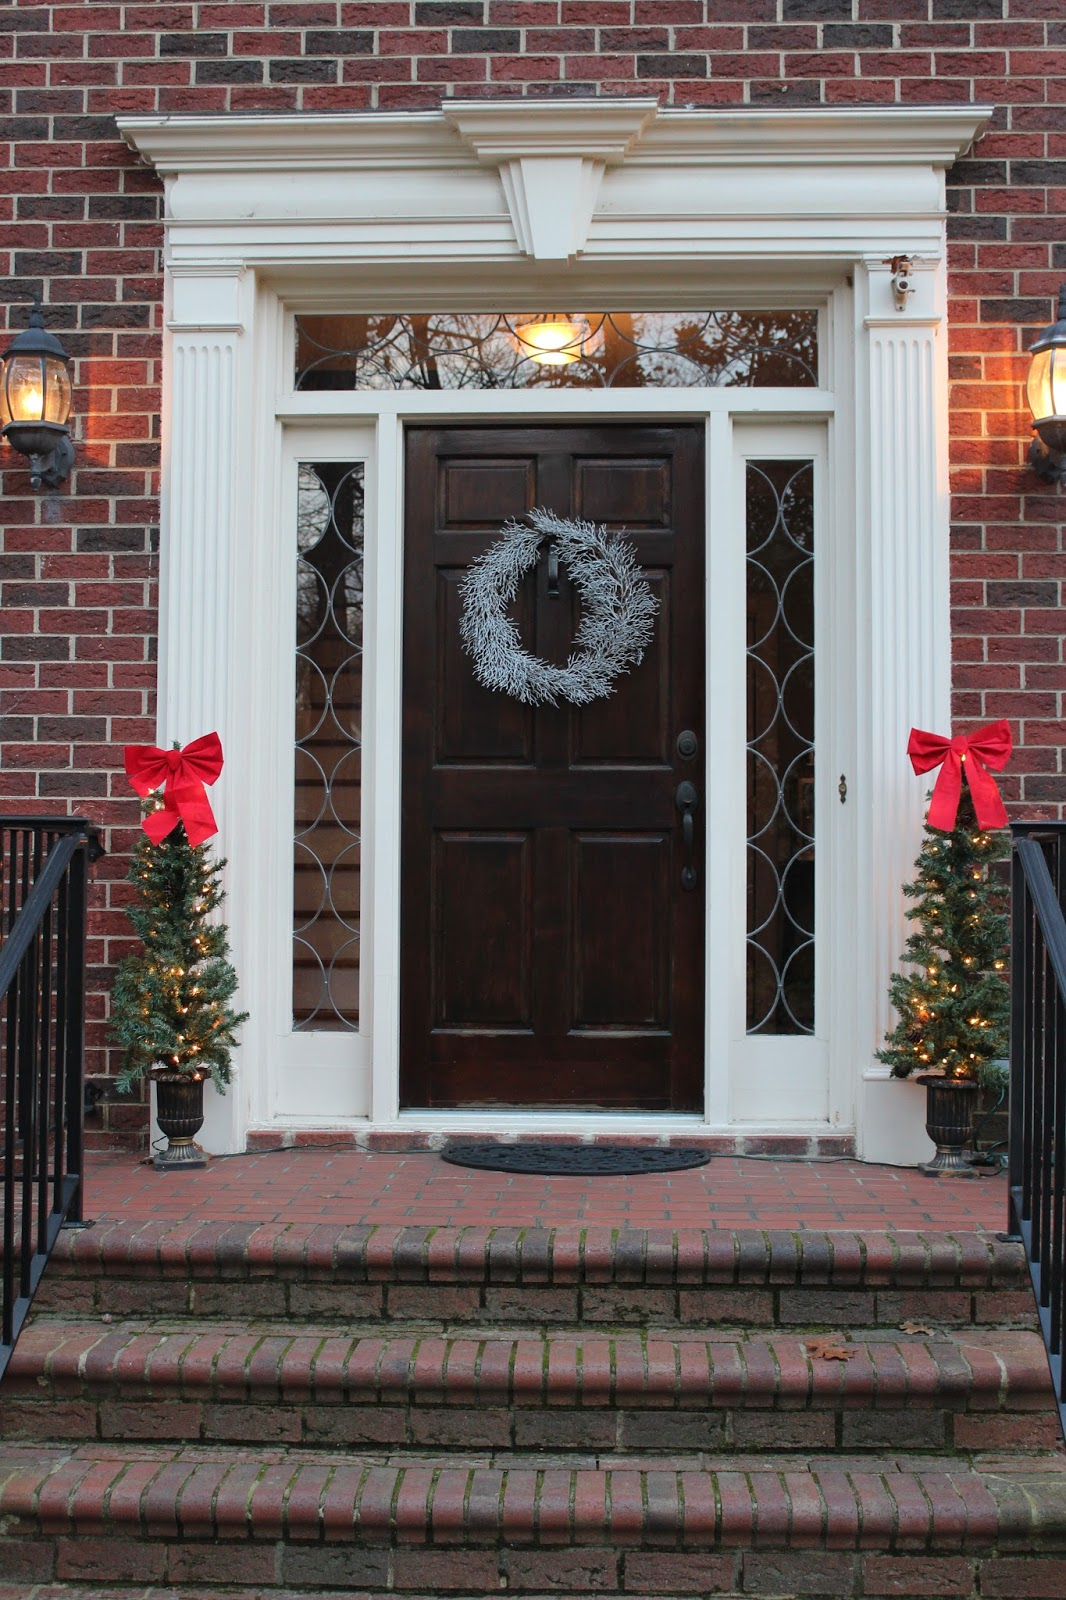 Why do we decorate our houses at christmas - Inside I Used The Garland That We Used To Have Outside At Our Old House On The Banister I Still Want To Get Some To Go Outside Around Our Front Door At